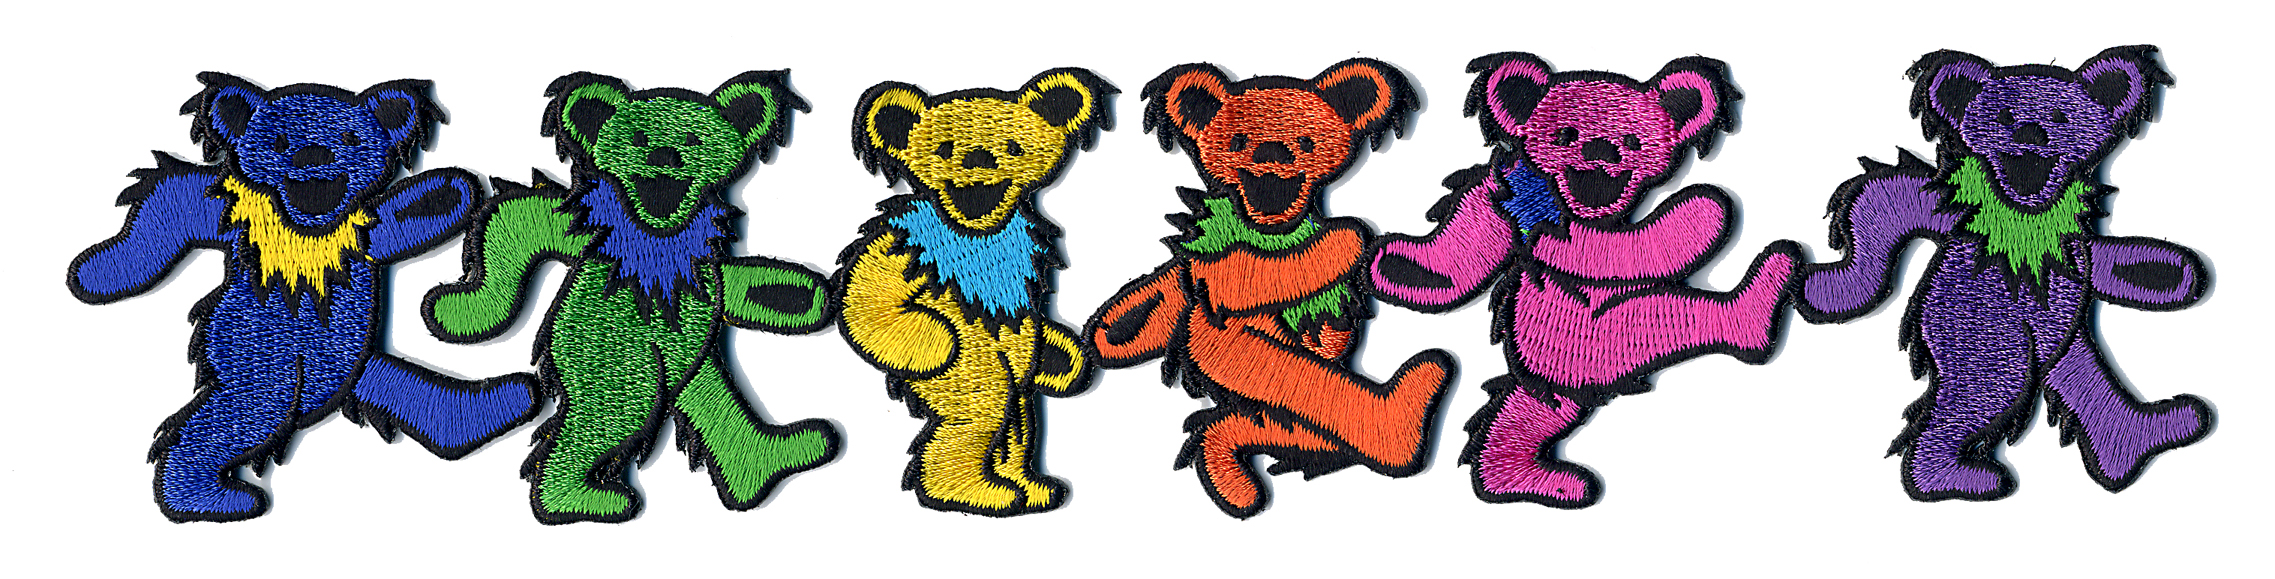 327263f4691 GRATEFUL DEAD 6 RAINBOW DANCING BEARS IN LINE PATCH  Gypsy Rose